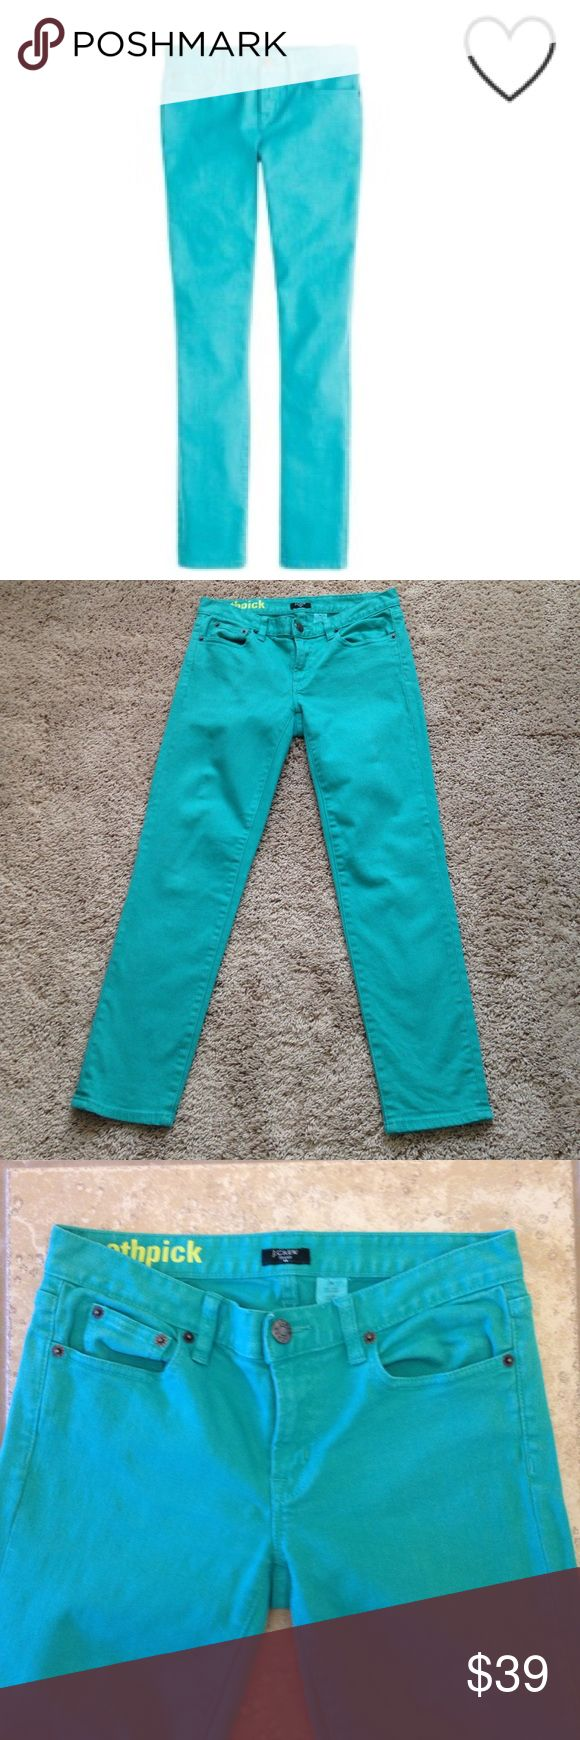 """J. Crew Toothpick Jeans J. Crew Toothpick Jeans that are a aqua, blue- greenish, color. These are 99% cotton, 1% spandex. Measurements are waist laying flat 14"""" across, Rise 7 1/2"""", Inseam 26"""" inches. My pictures are coming up just a bit darker than actual color. These were only worn twice. Good condition!!!👗 J. Crew Jeans Skinny"""